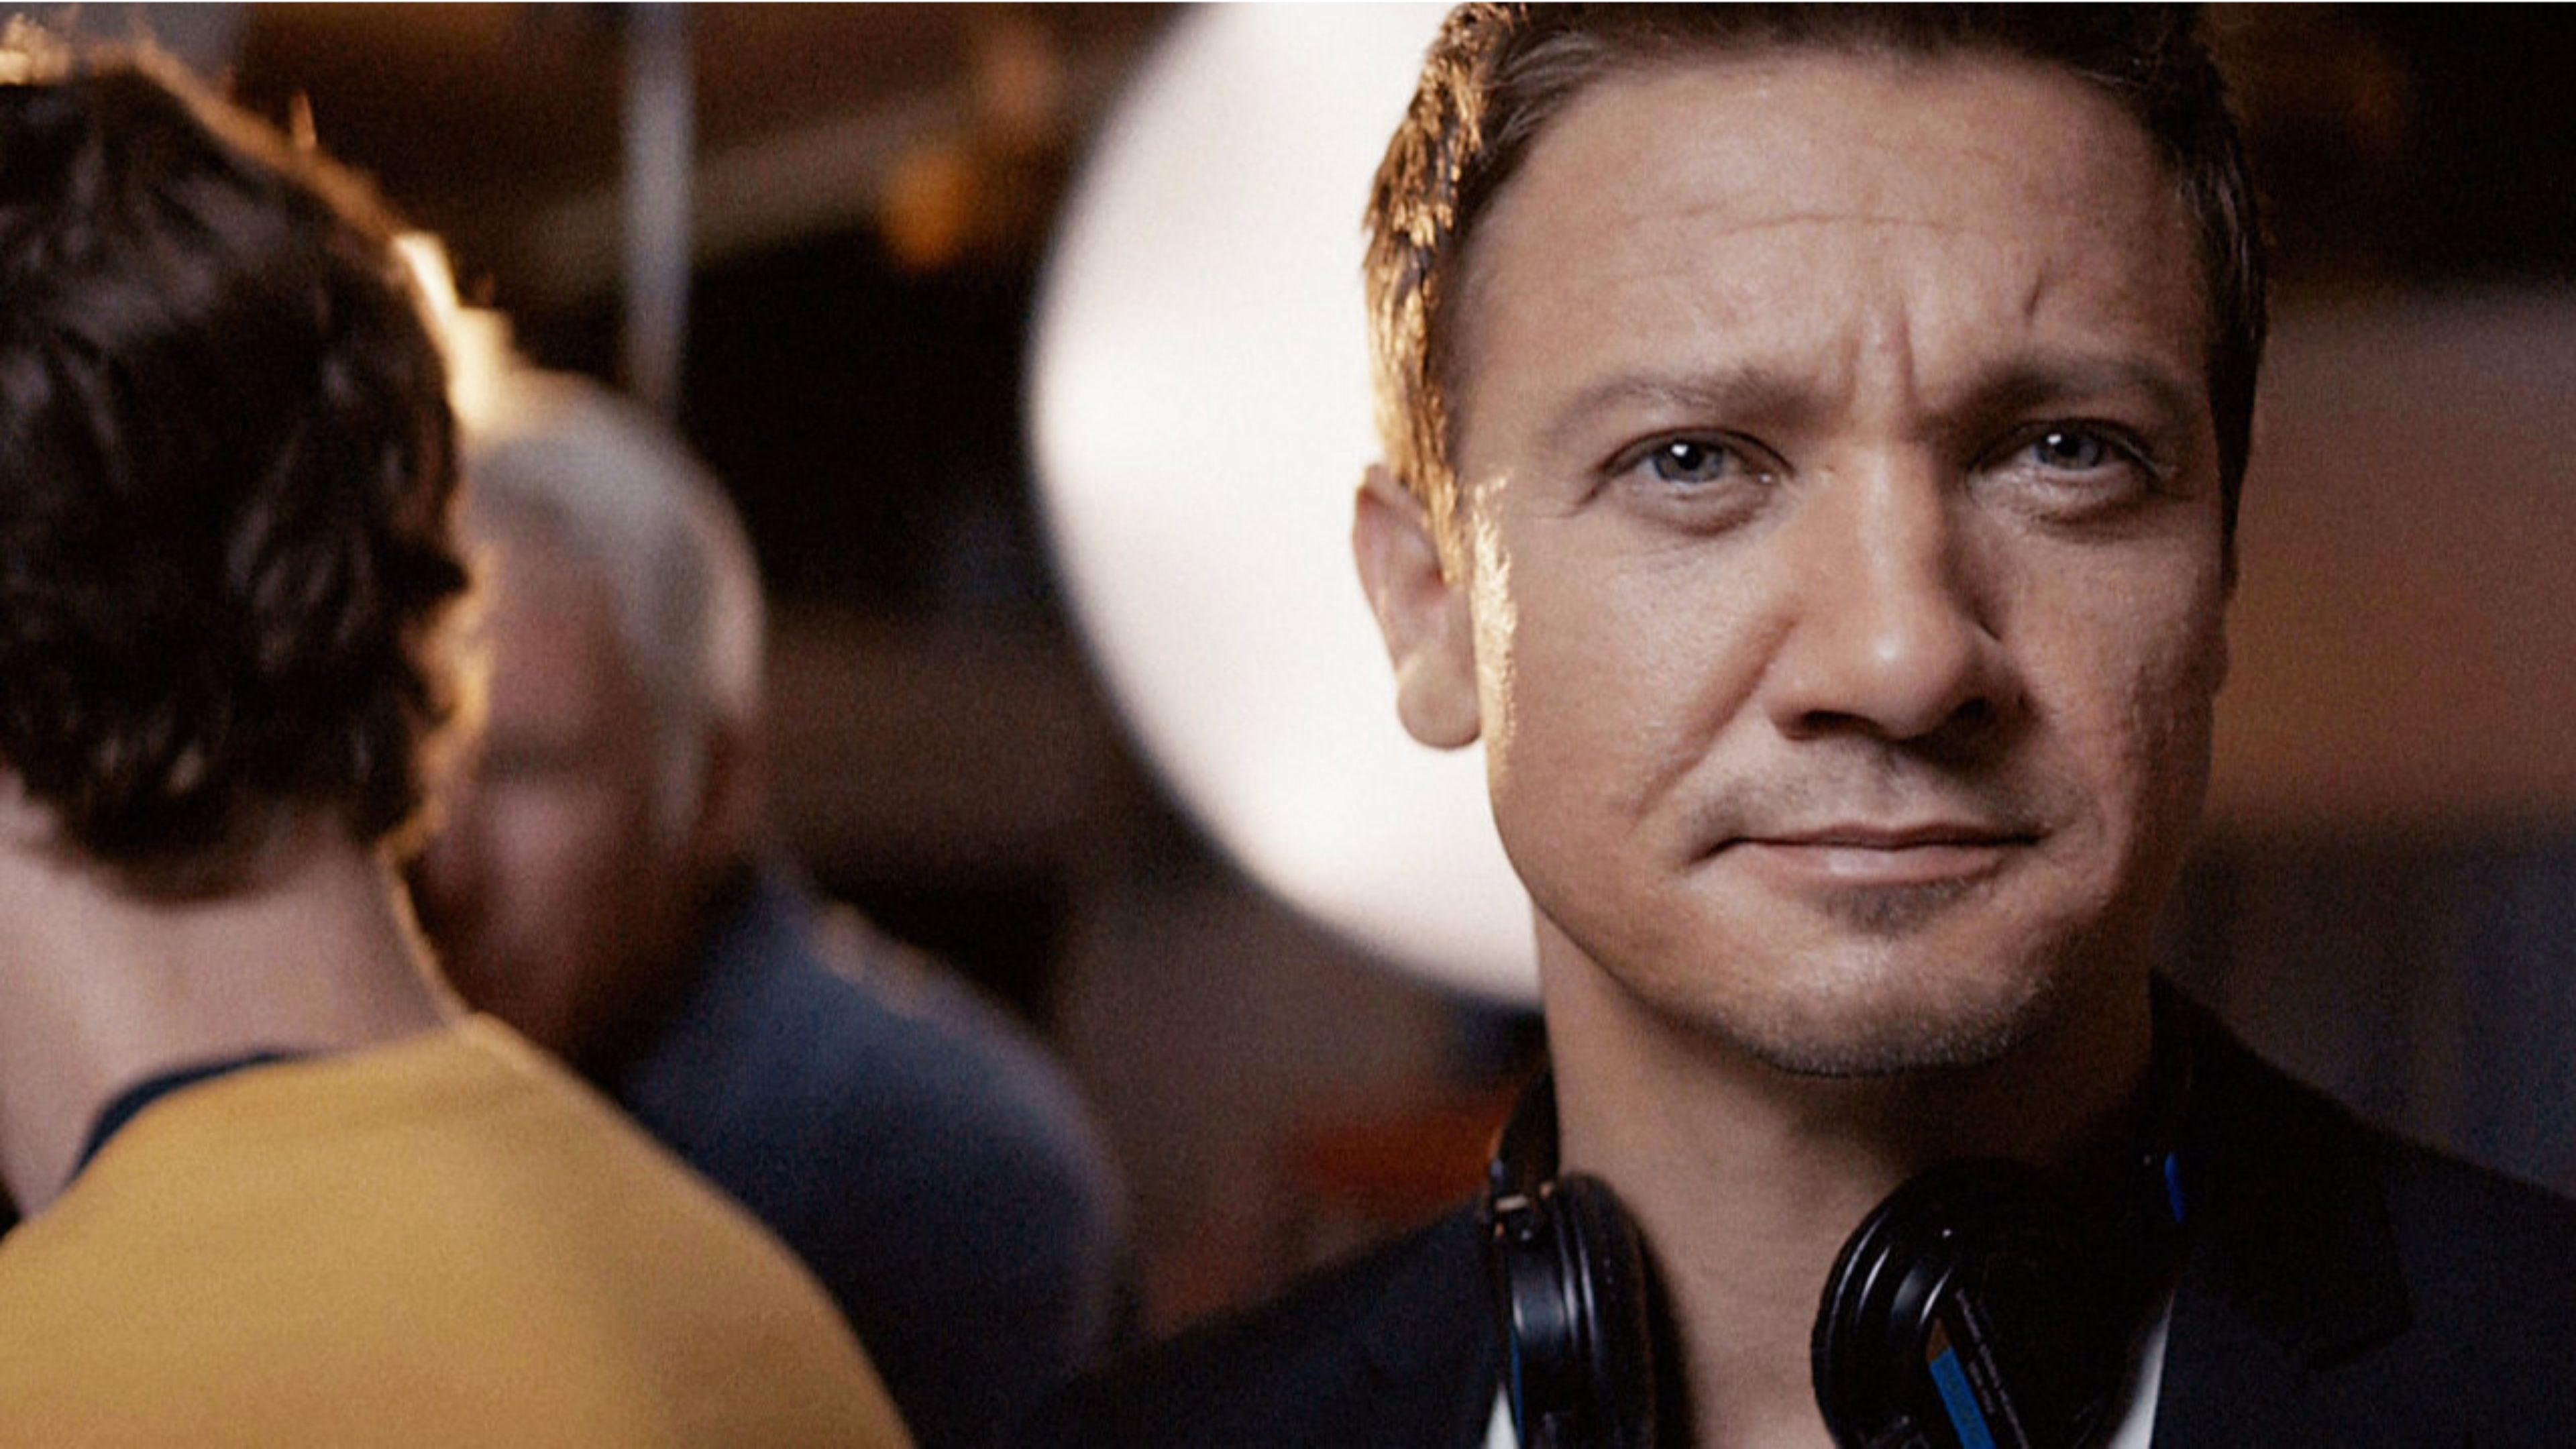 Download Trending 2016 Jeremy Renner 4K Wallpaper 4K Wallpaper 3840x2160